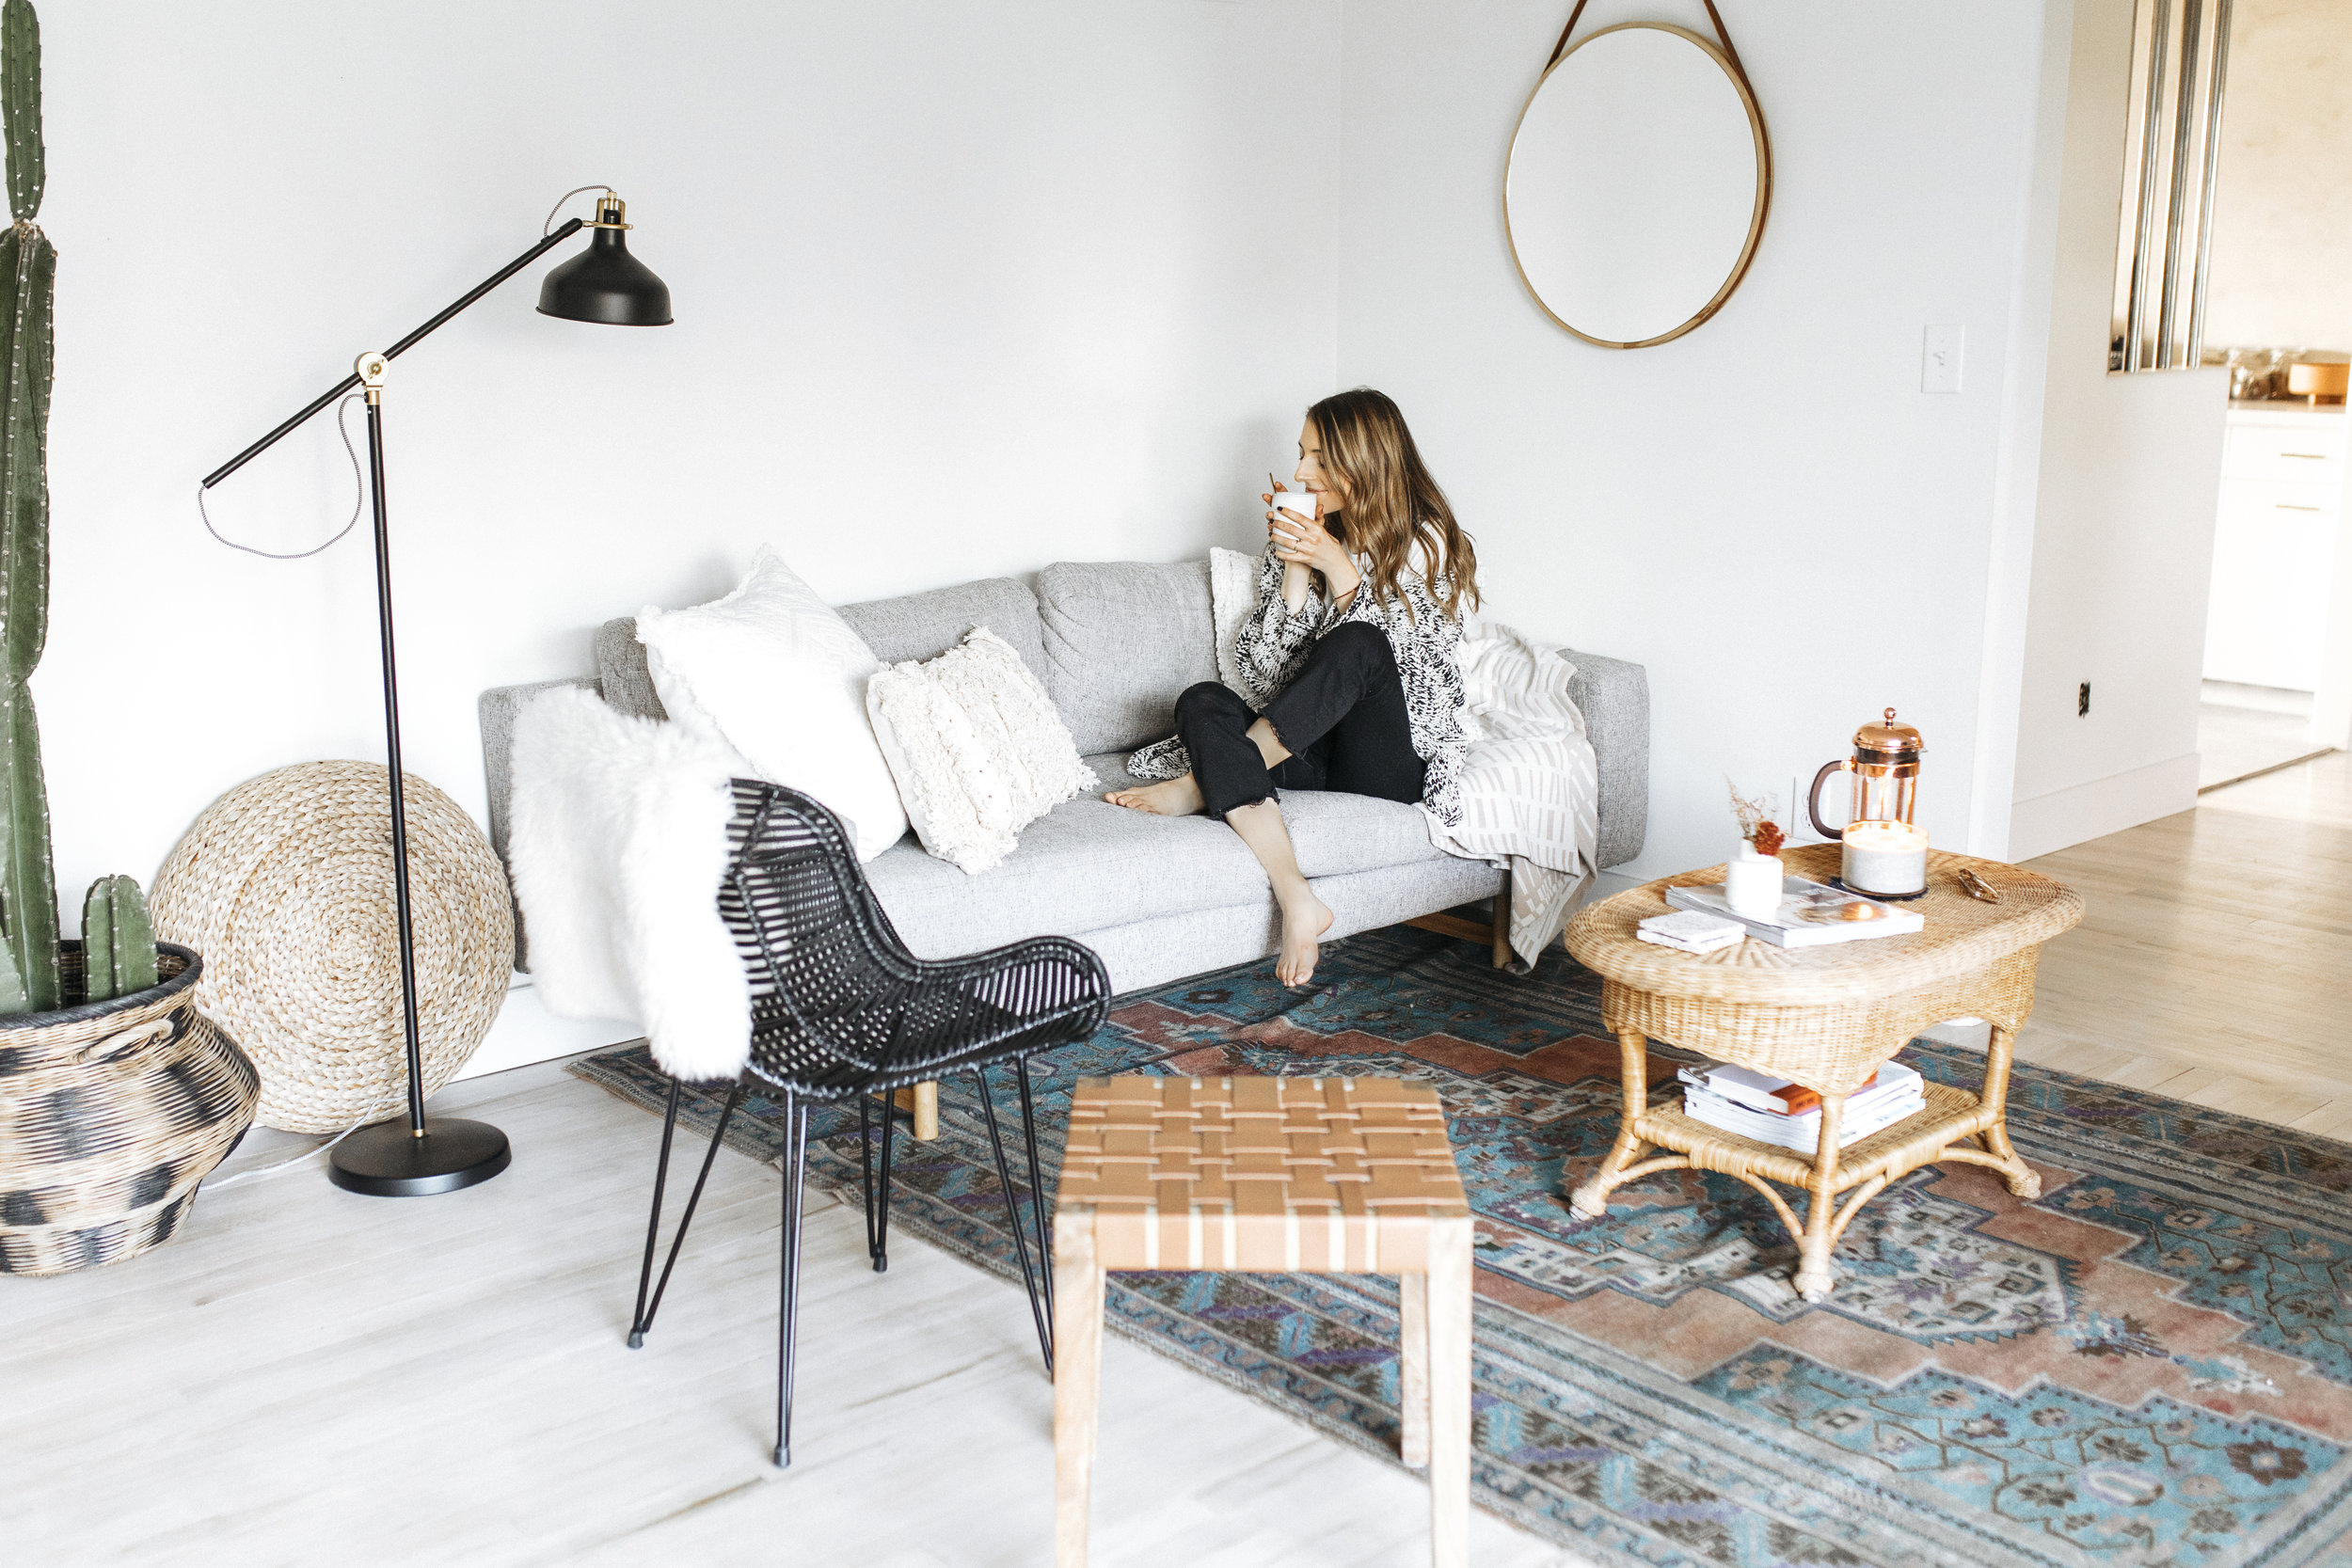 Blogger cuddles with her woven blankets, sipping tea, after hygge -ing up her home for the fall season. Sweaters and candles are in!